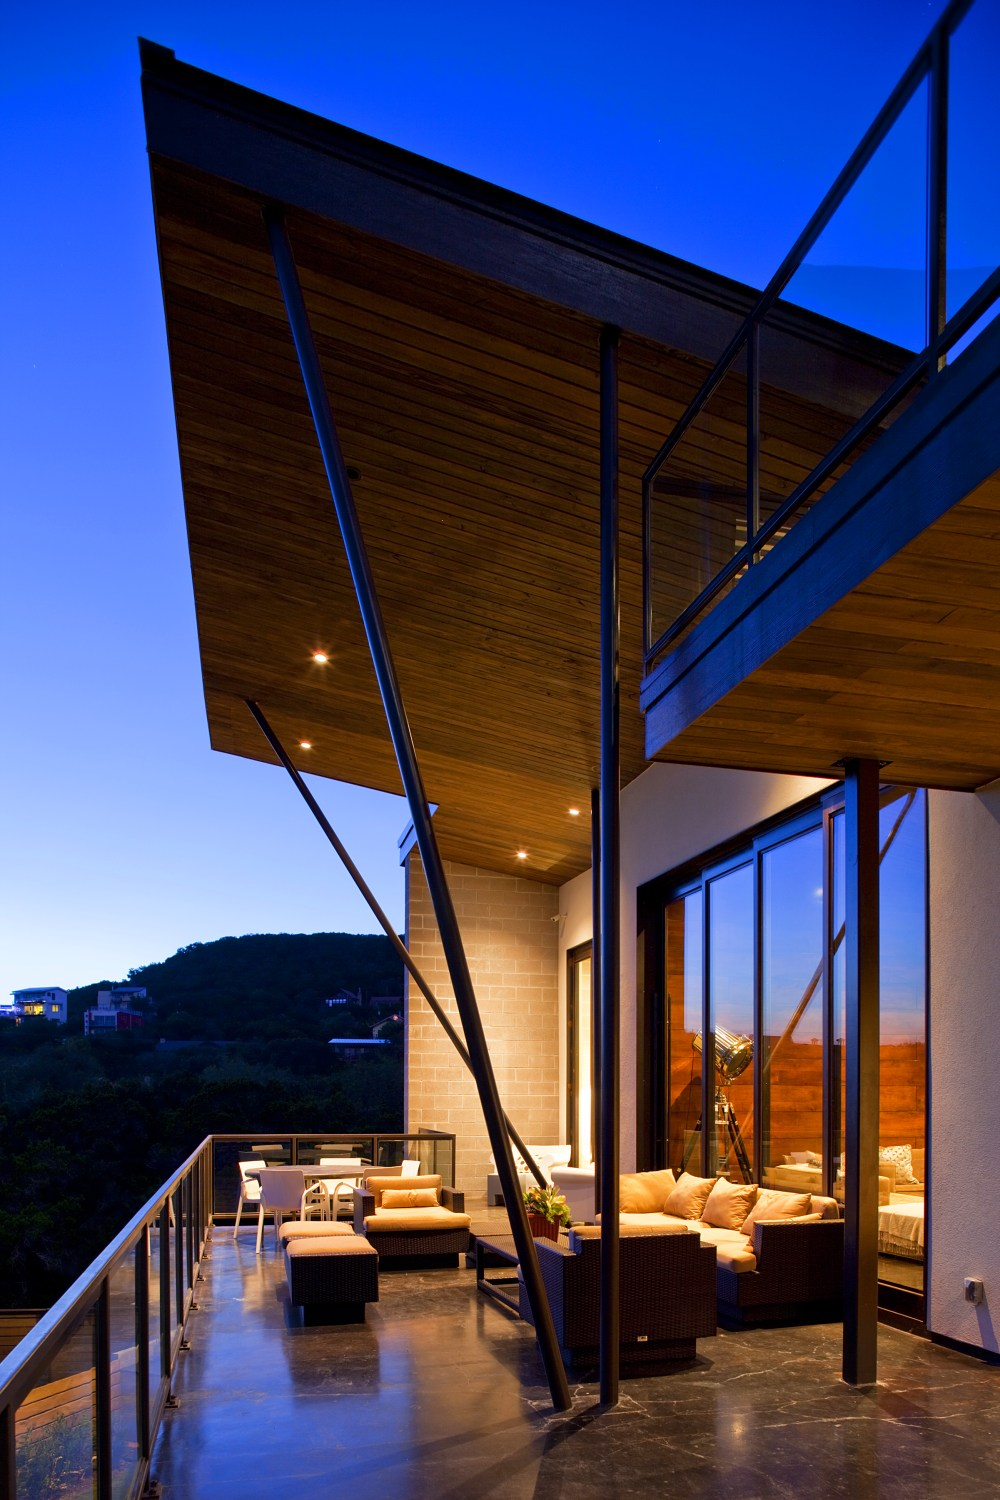 Architecture Home Modern Industrial patio balcony